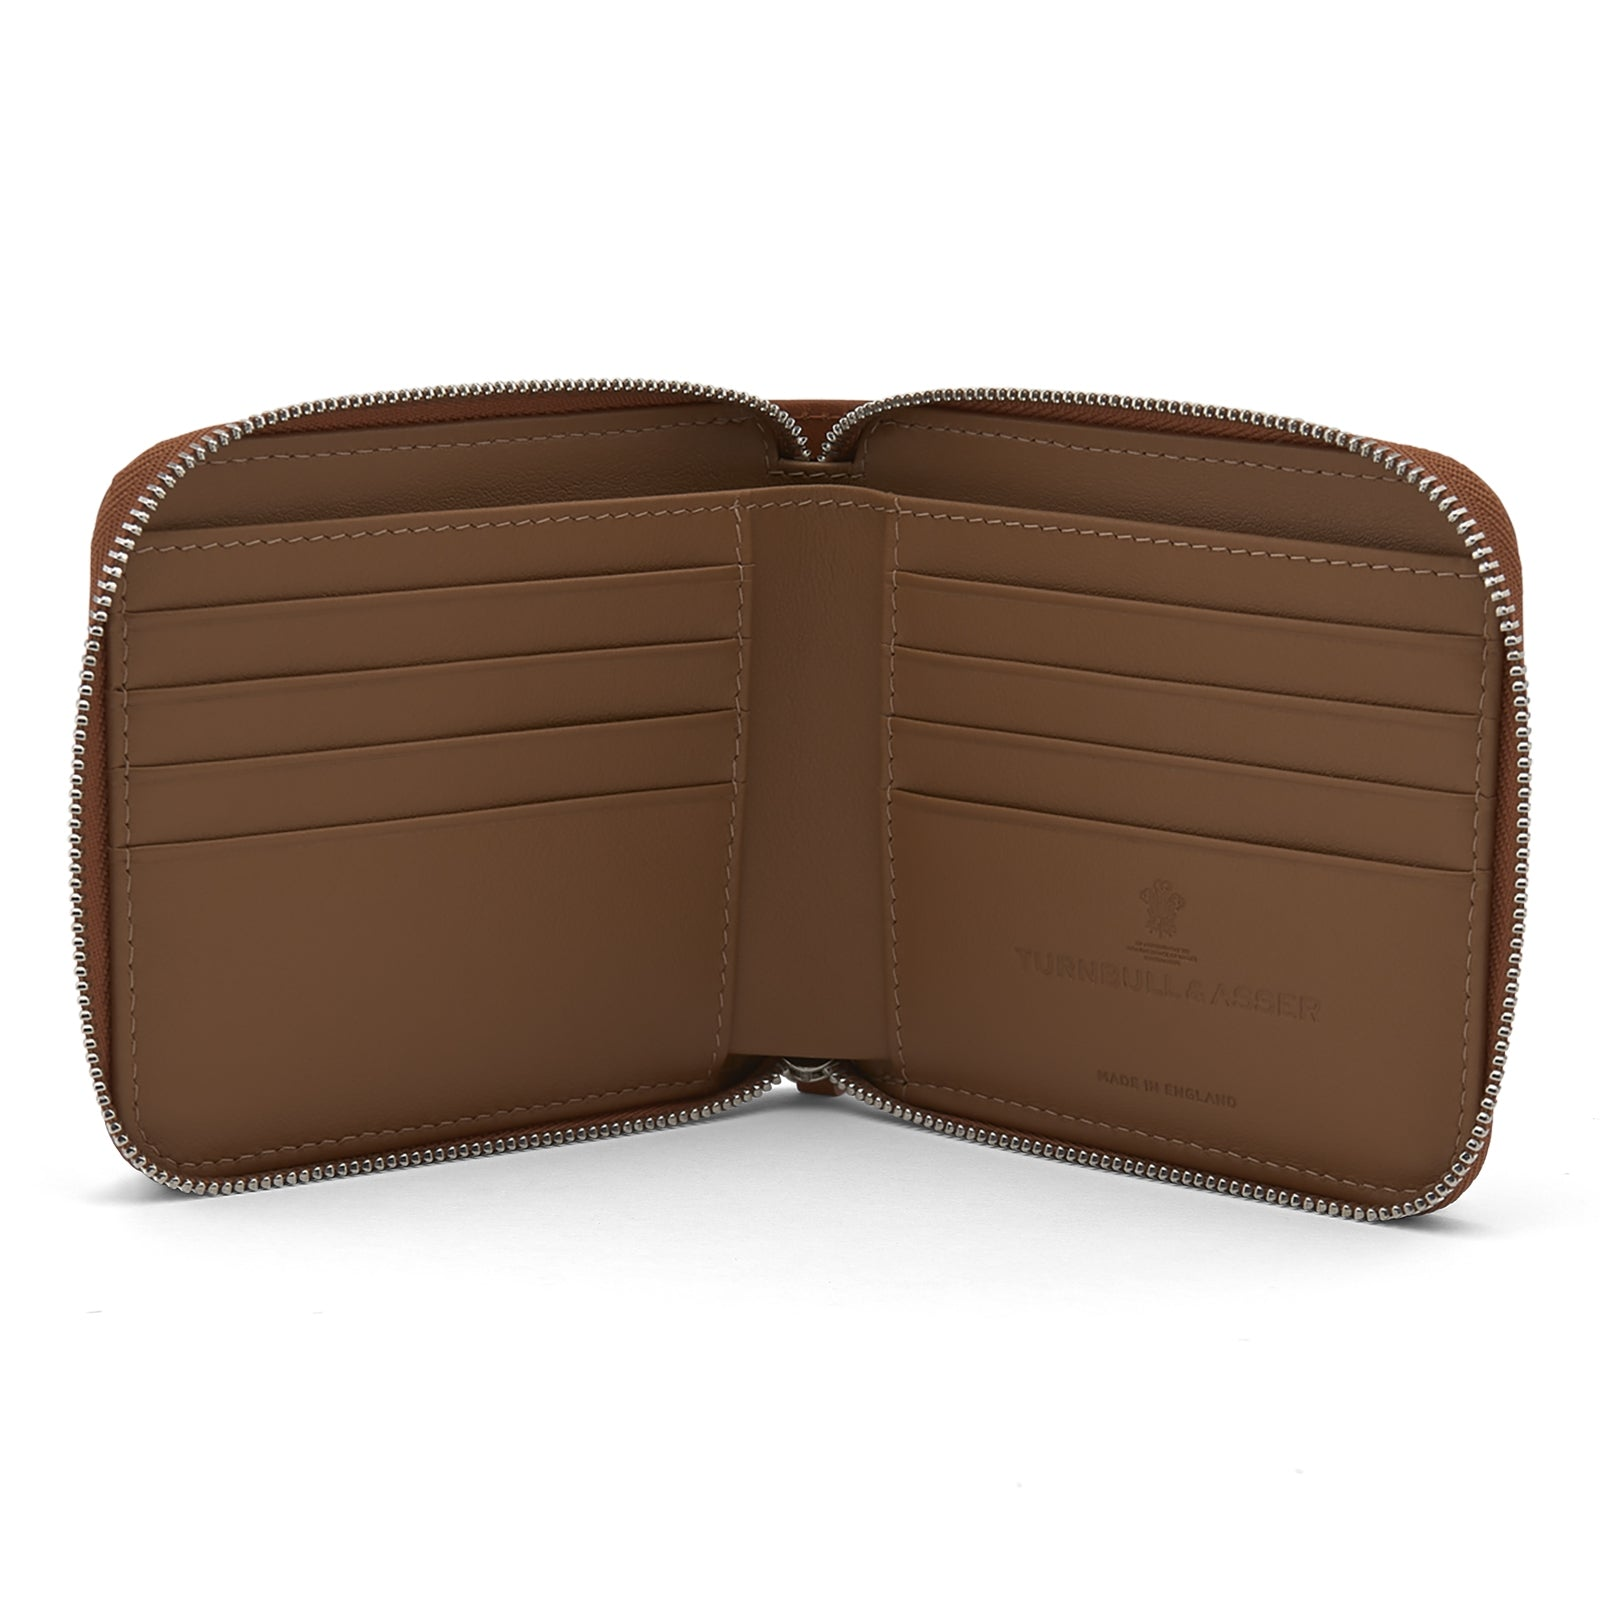 Light Tan Leather 8 C/C Zipped Wallet